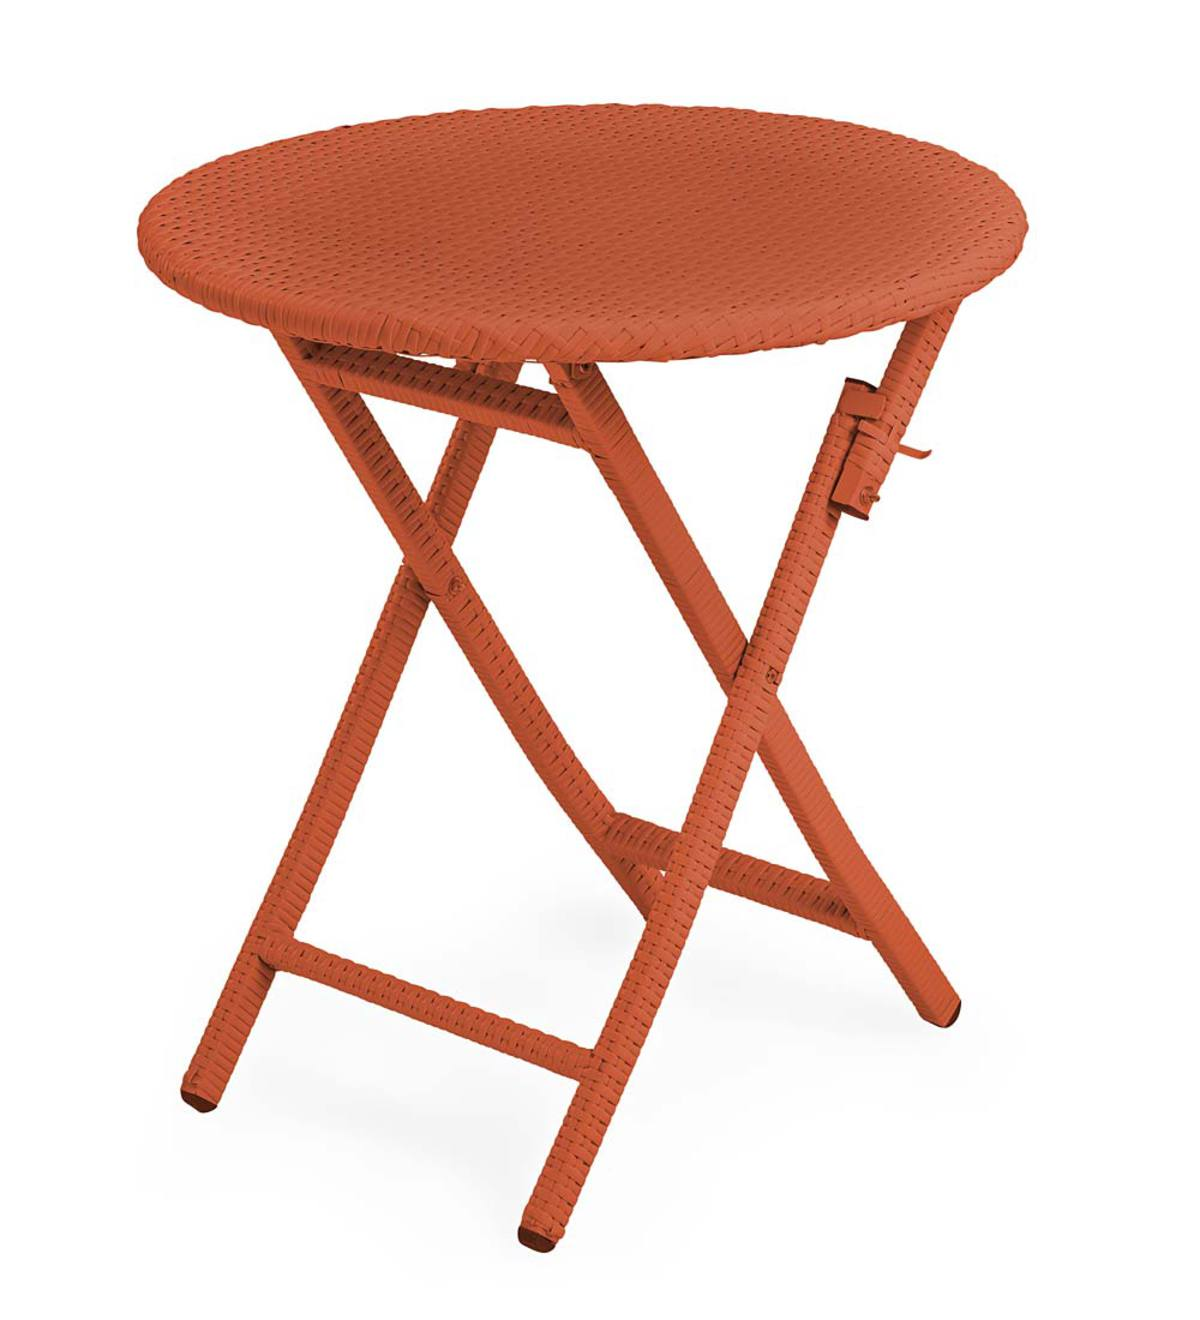 Sale! Tangier Wicker Folding Round Bistro Table - Orange